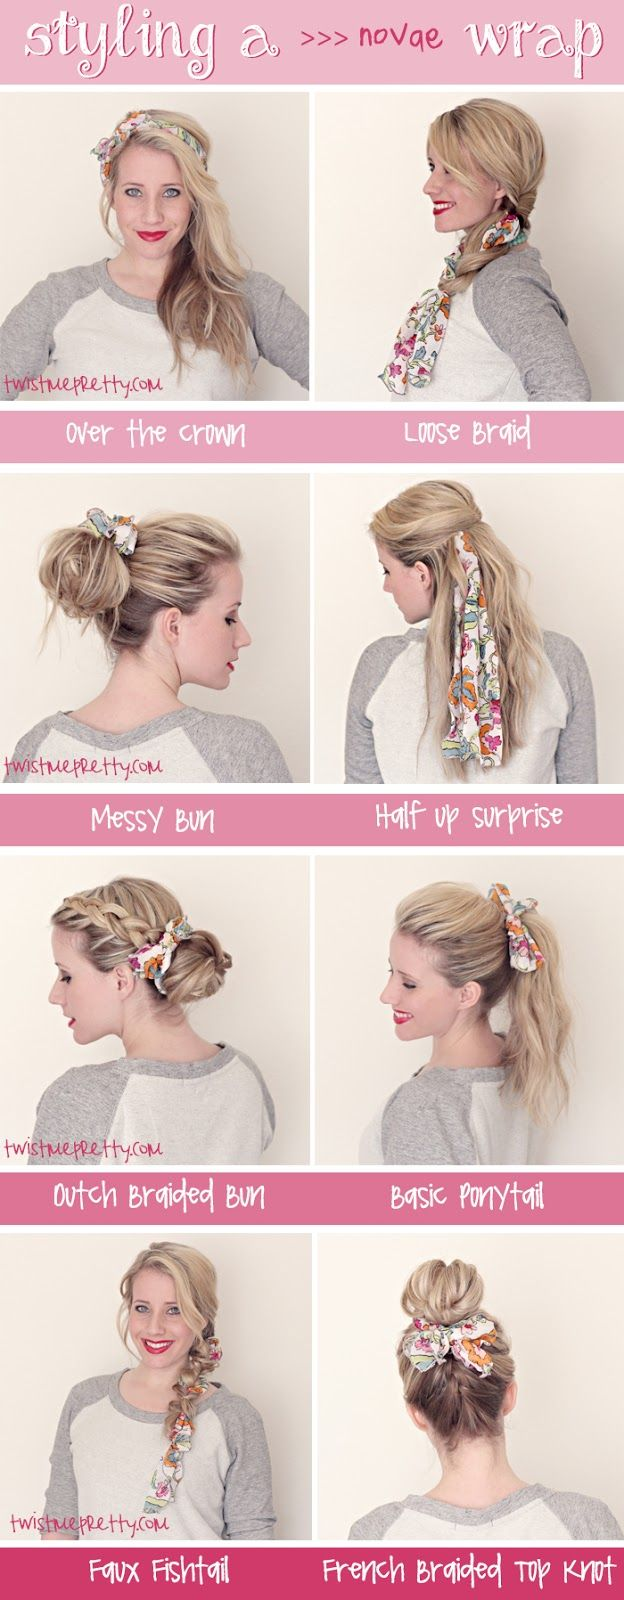 Hair scarf ideas